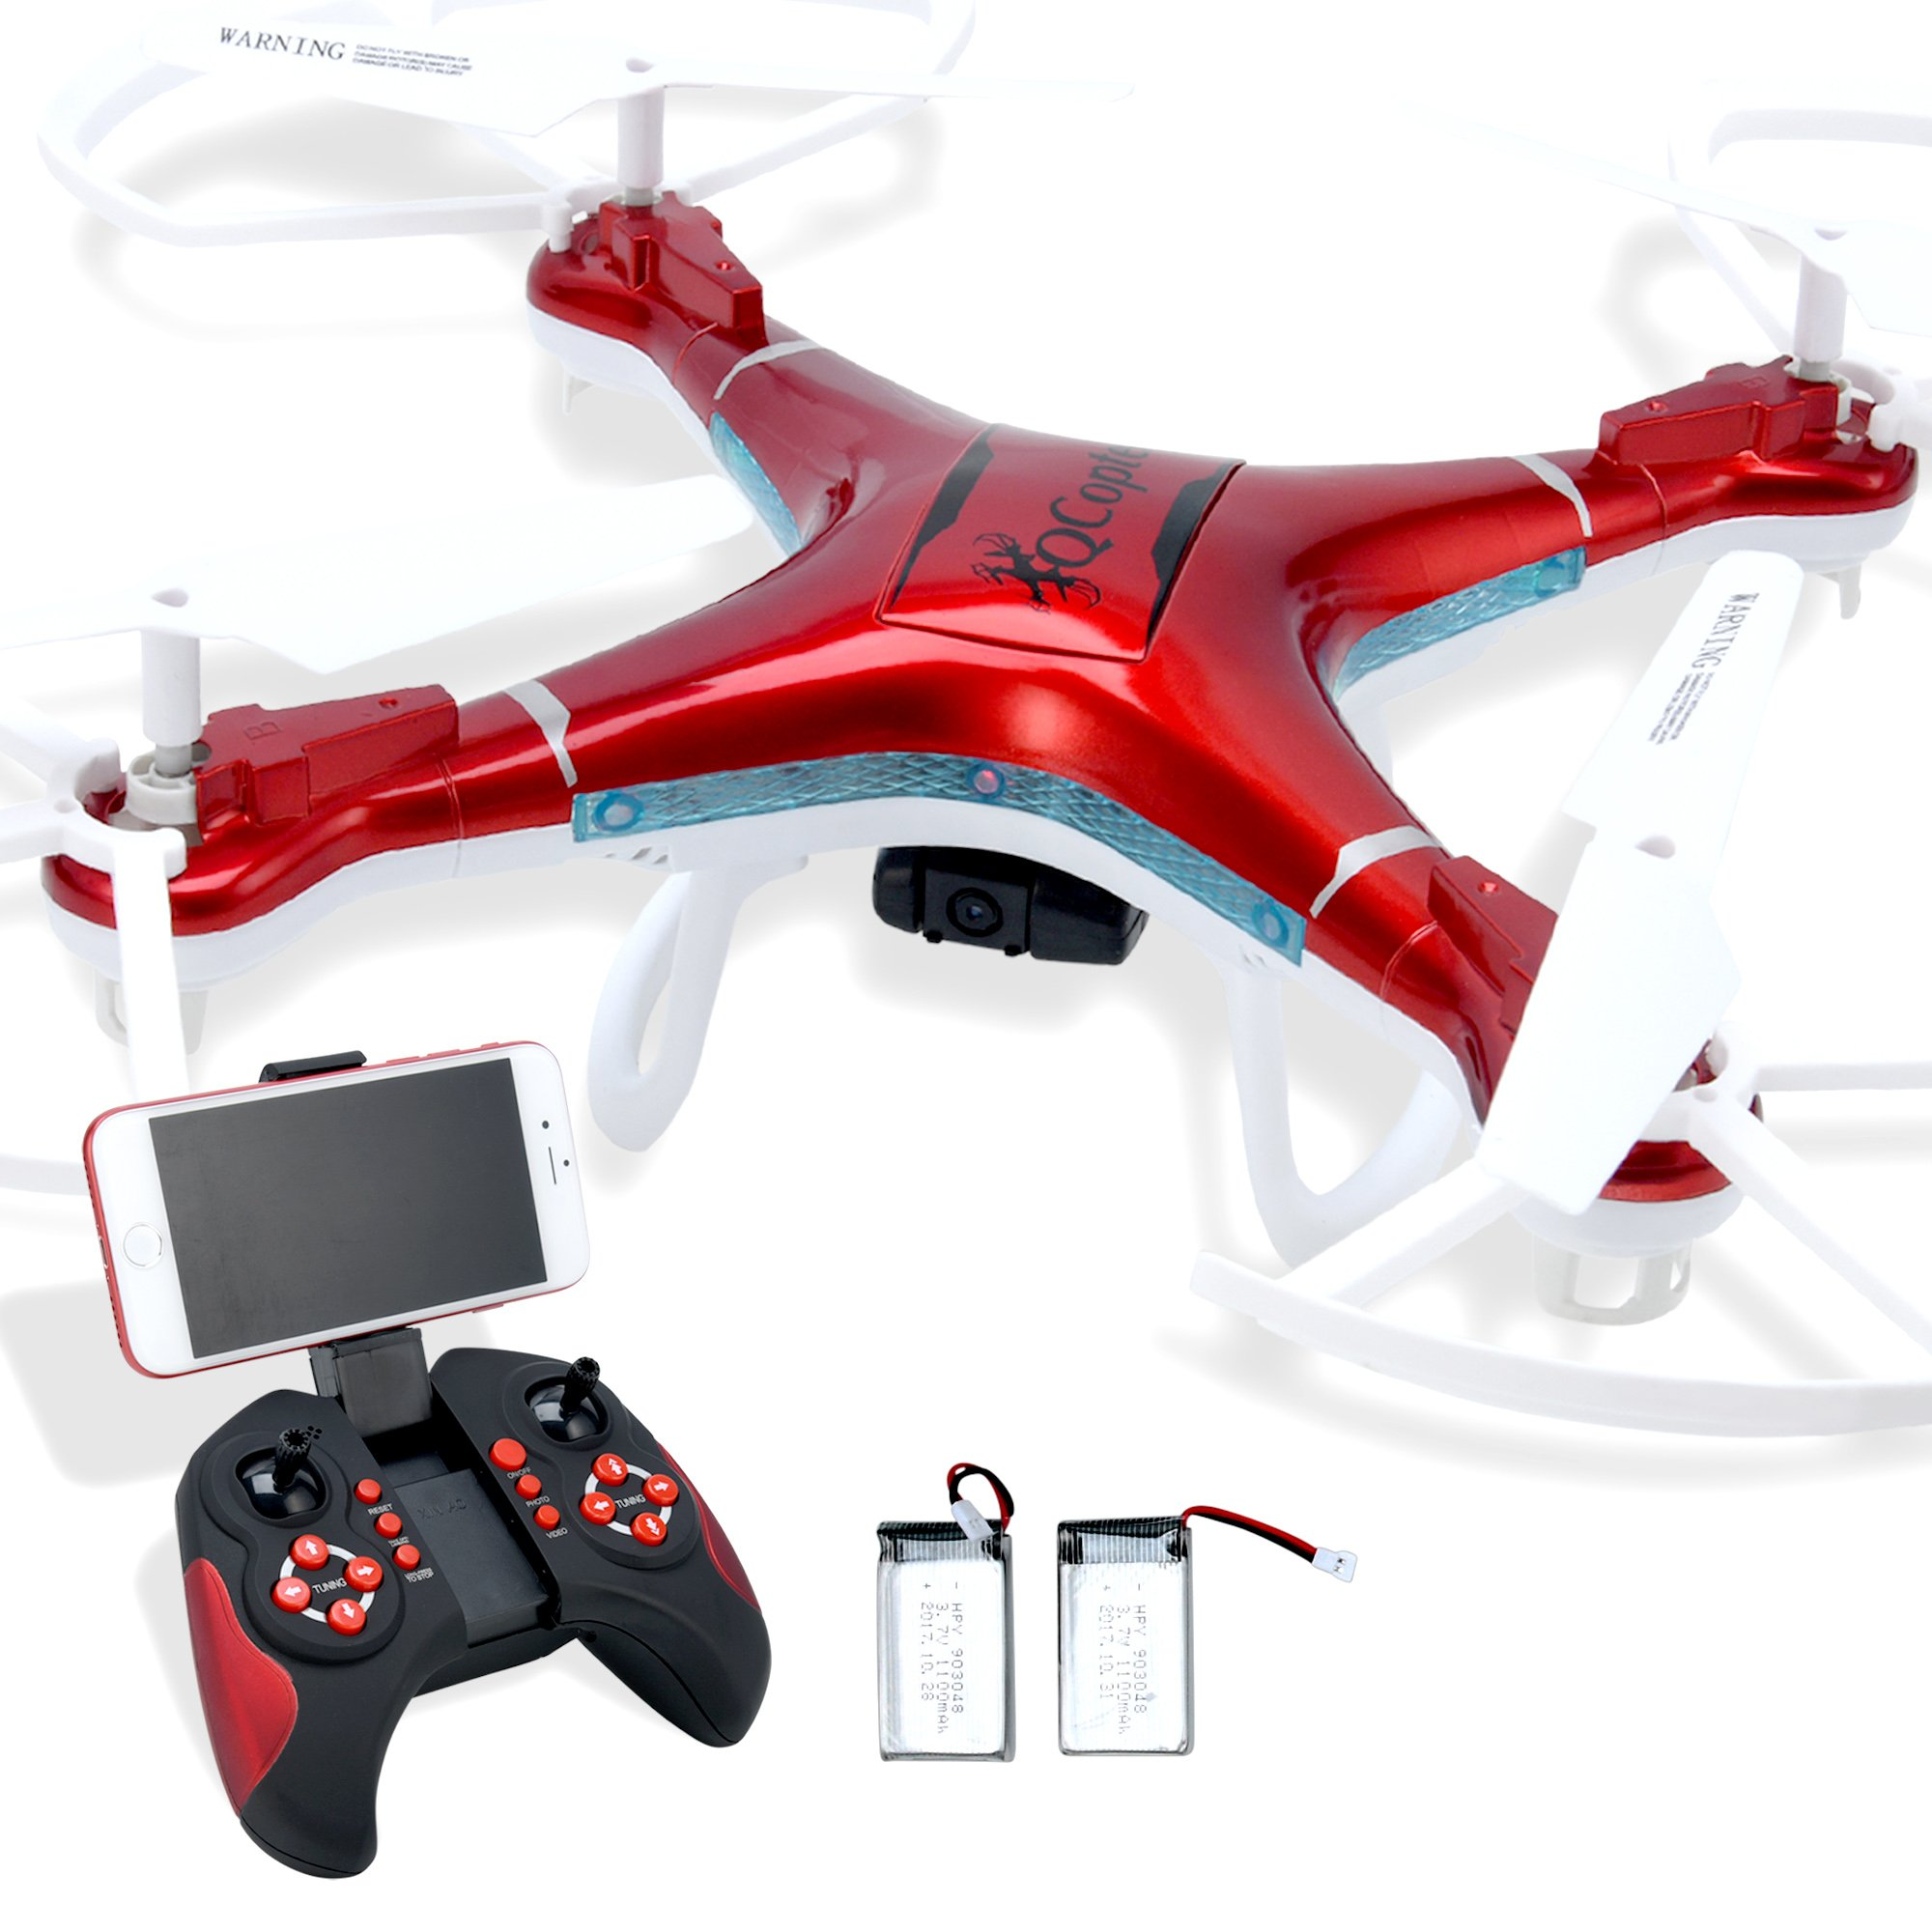 ar drone 1080p camera with Producto on Drone besides Zoekaanbieding php as well Producto besides Affordable Quadcopter Syma X8g Stability With Camera moreover 441496 the Phantom 4 Pro Is The Levelled Up Drone Of Your Dreams.